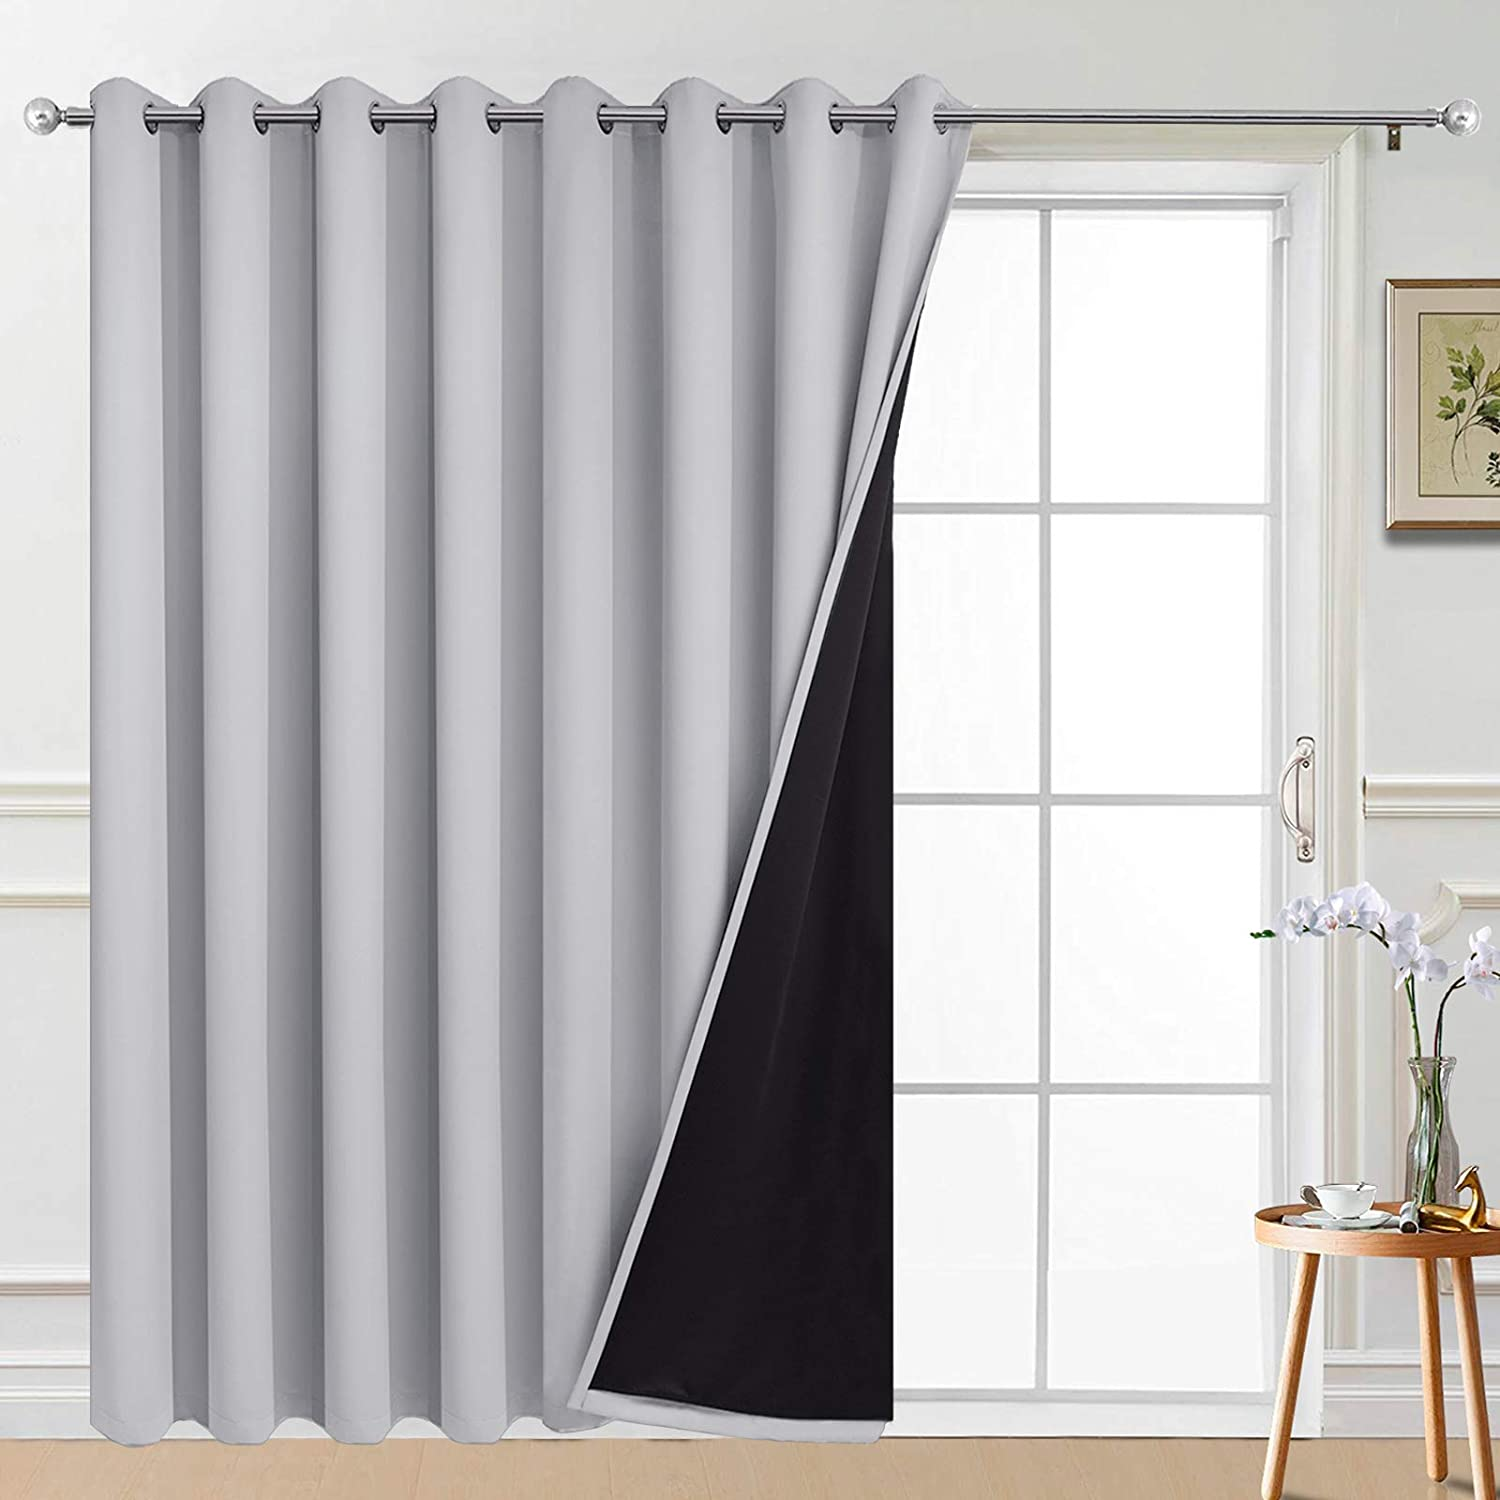 Yakamok 100% Wide Blackout Curtain 100 Sliding G x for 96 trend rank safety Inches